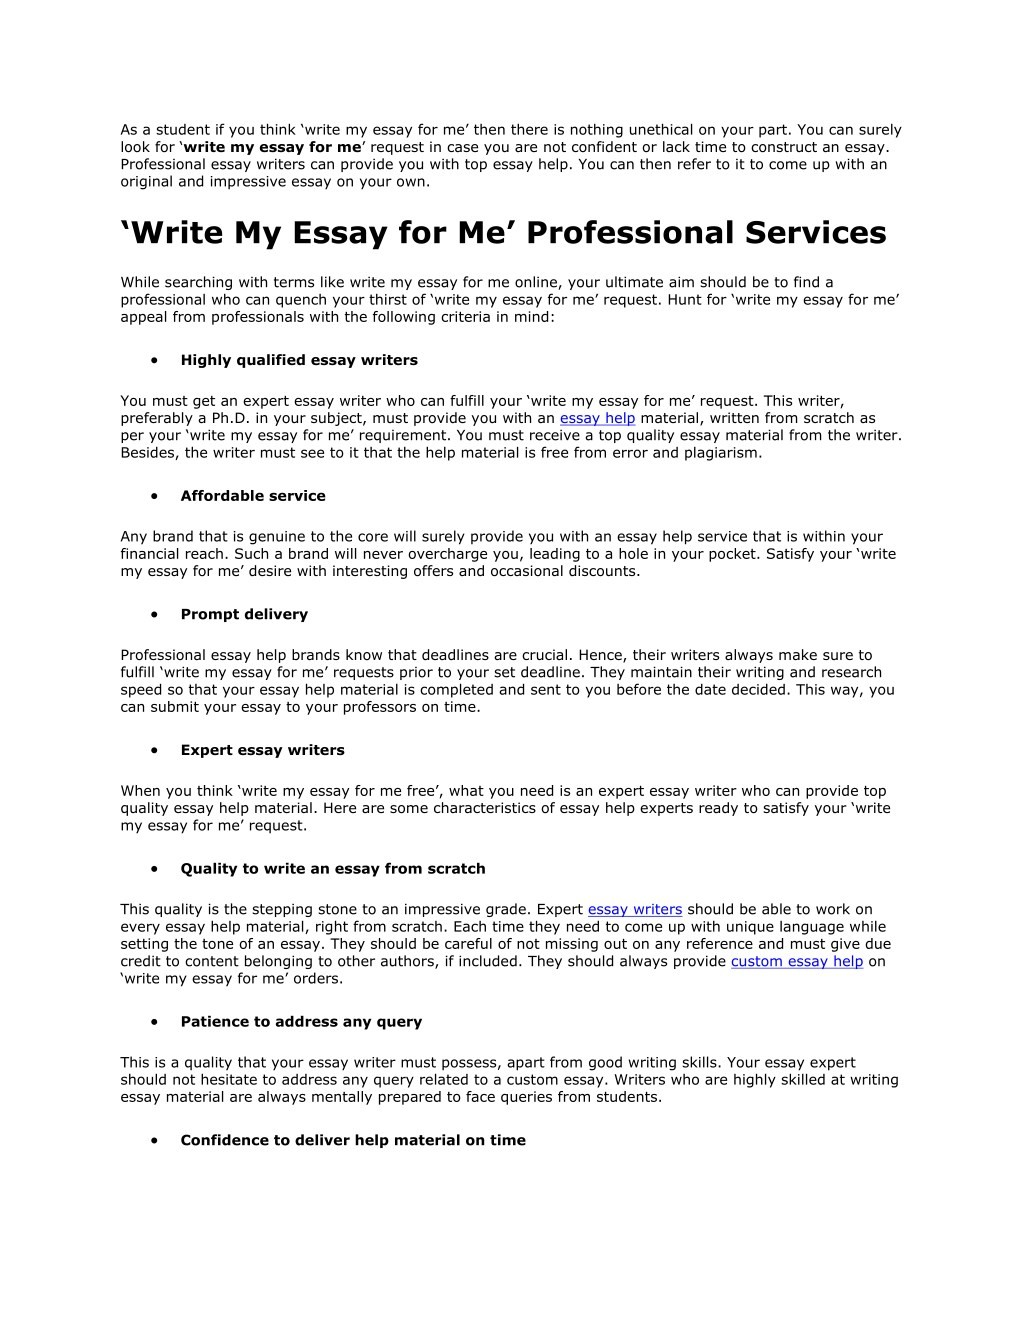 017 Write My Essay For Me Example As Student If You Think Surprising Free Online Cheap App Large